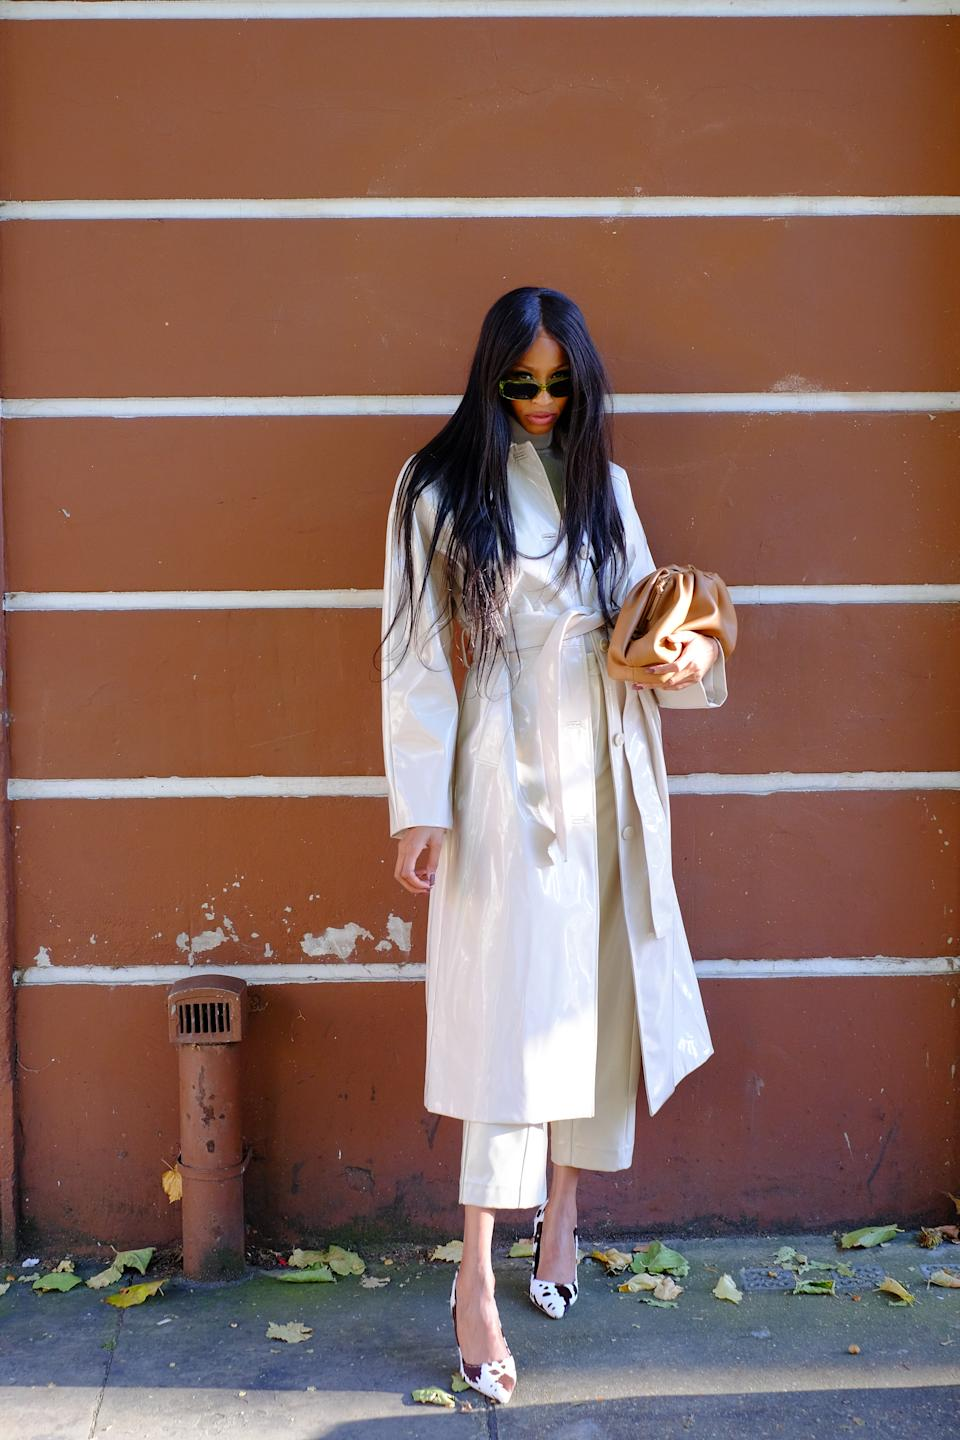 Designer Rachael Broussard is seen wearing a sleek white trench coat and cow print heels. [Photo: PA]